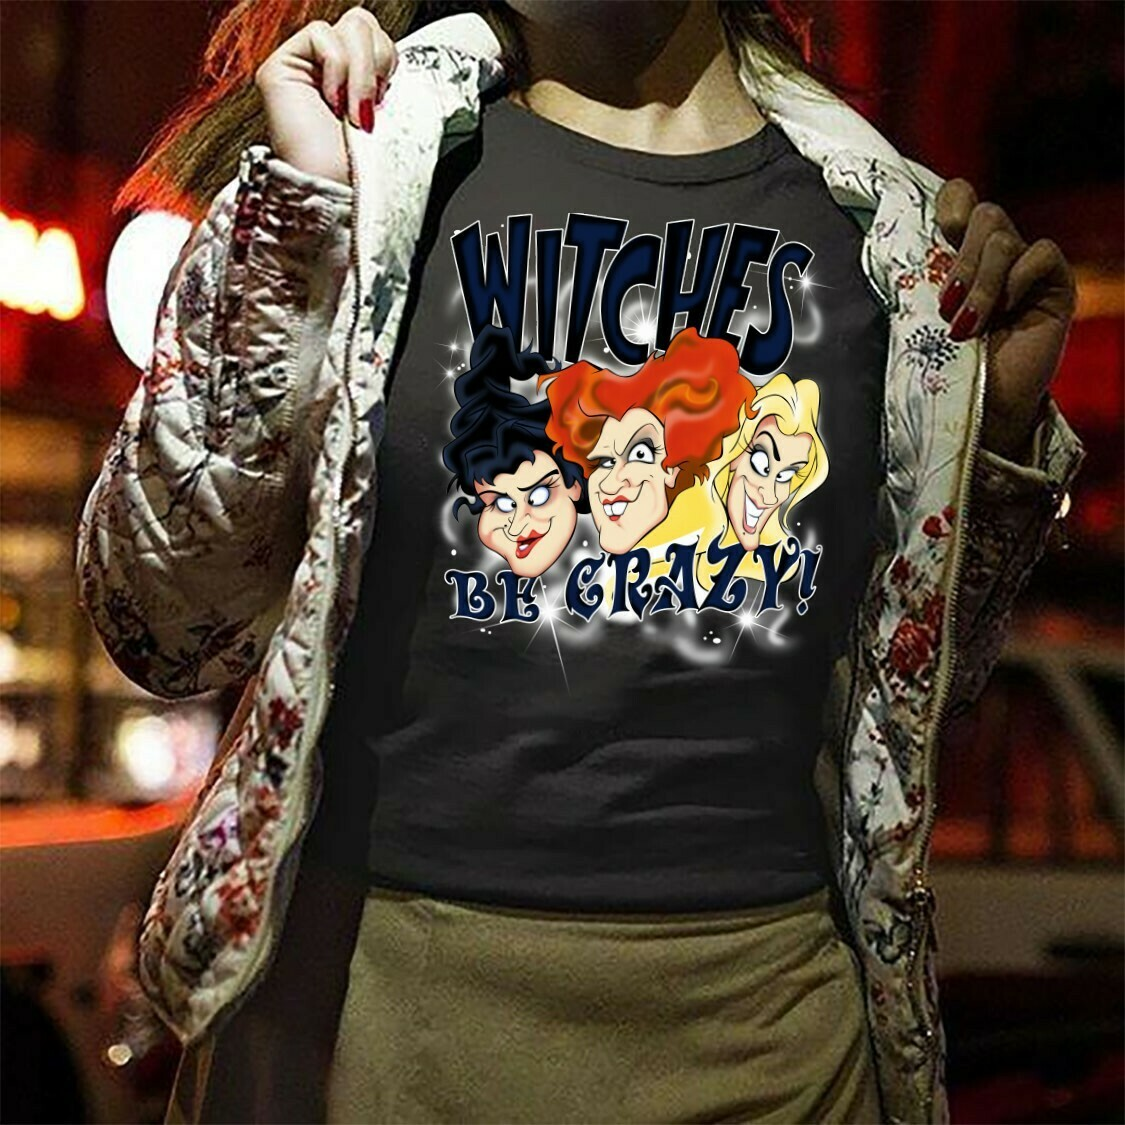 Witches Be Crazy Sanderson Sisters Hocus Pocus Witch Halloween Squad Villains Bad Girls Have More Fun Walt Disney World Vacation T-Shirt Long Sleeve Sweatshirt Hoodie Jolly Family Gifts